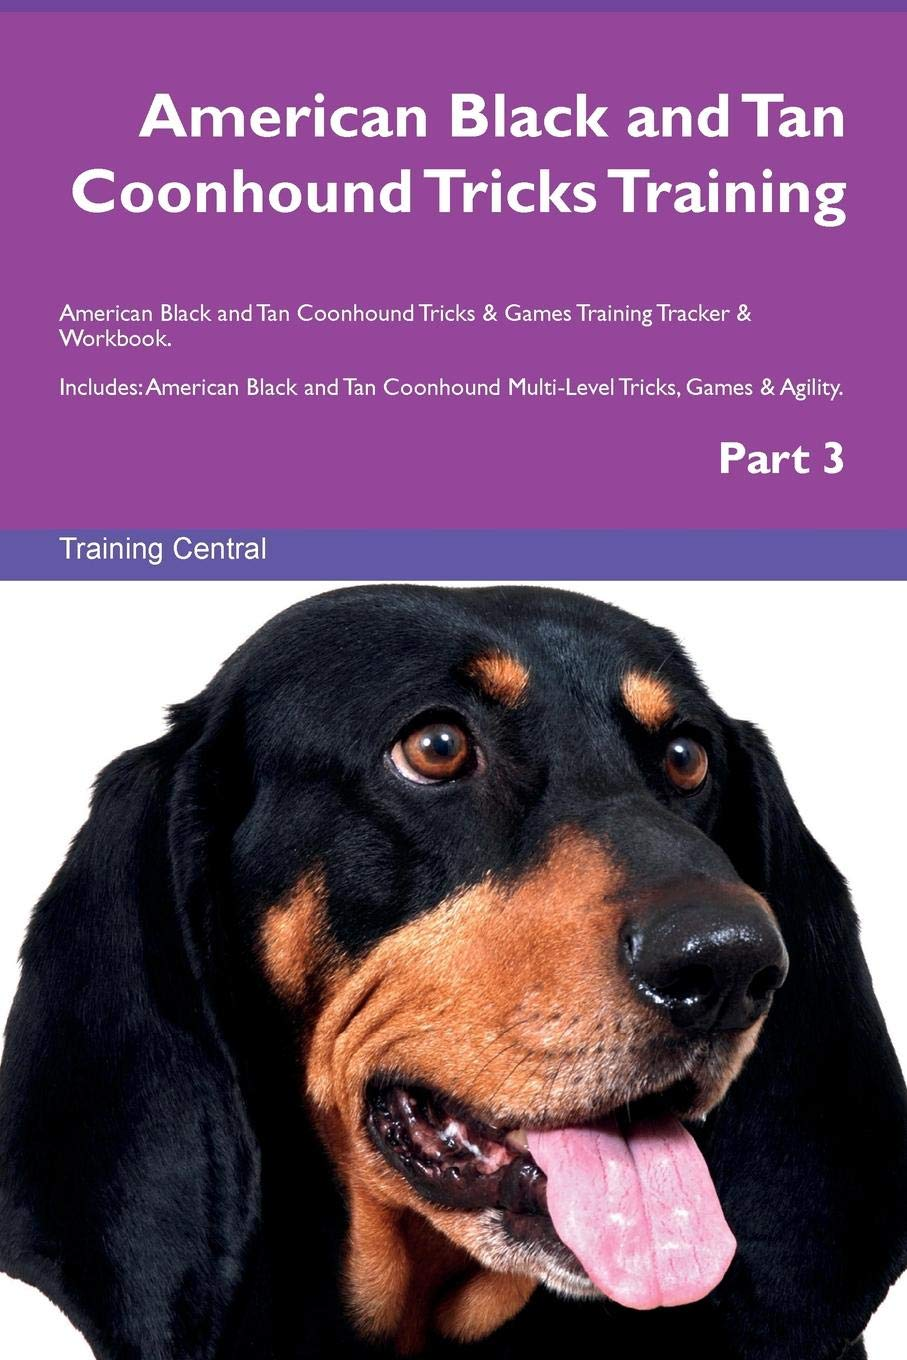 Download American Black and Tan Coonhound Tricks Training American Black and Tan Coonhound Tricks & Games Training Tracker & Workbook.  Includes: American ... Multi-Level Tricks, Games & Agility. Part 3 PDF